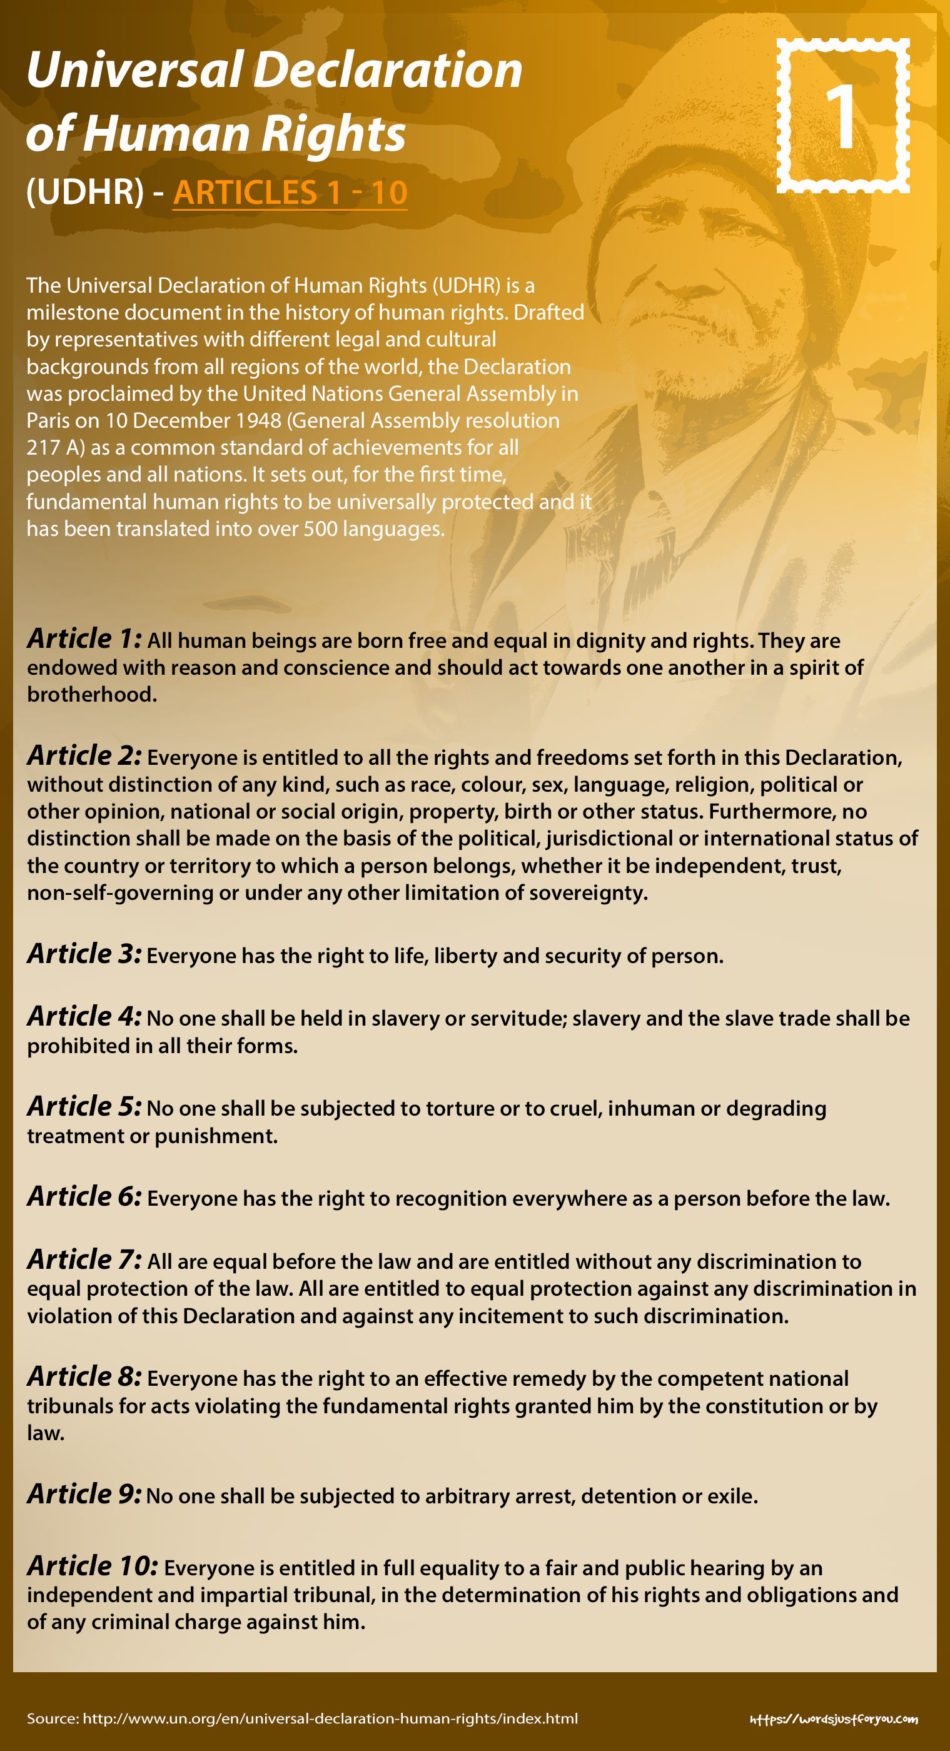 Human-Rights-Day_10-DECEMBER_UDCR-Articles-1-10